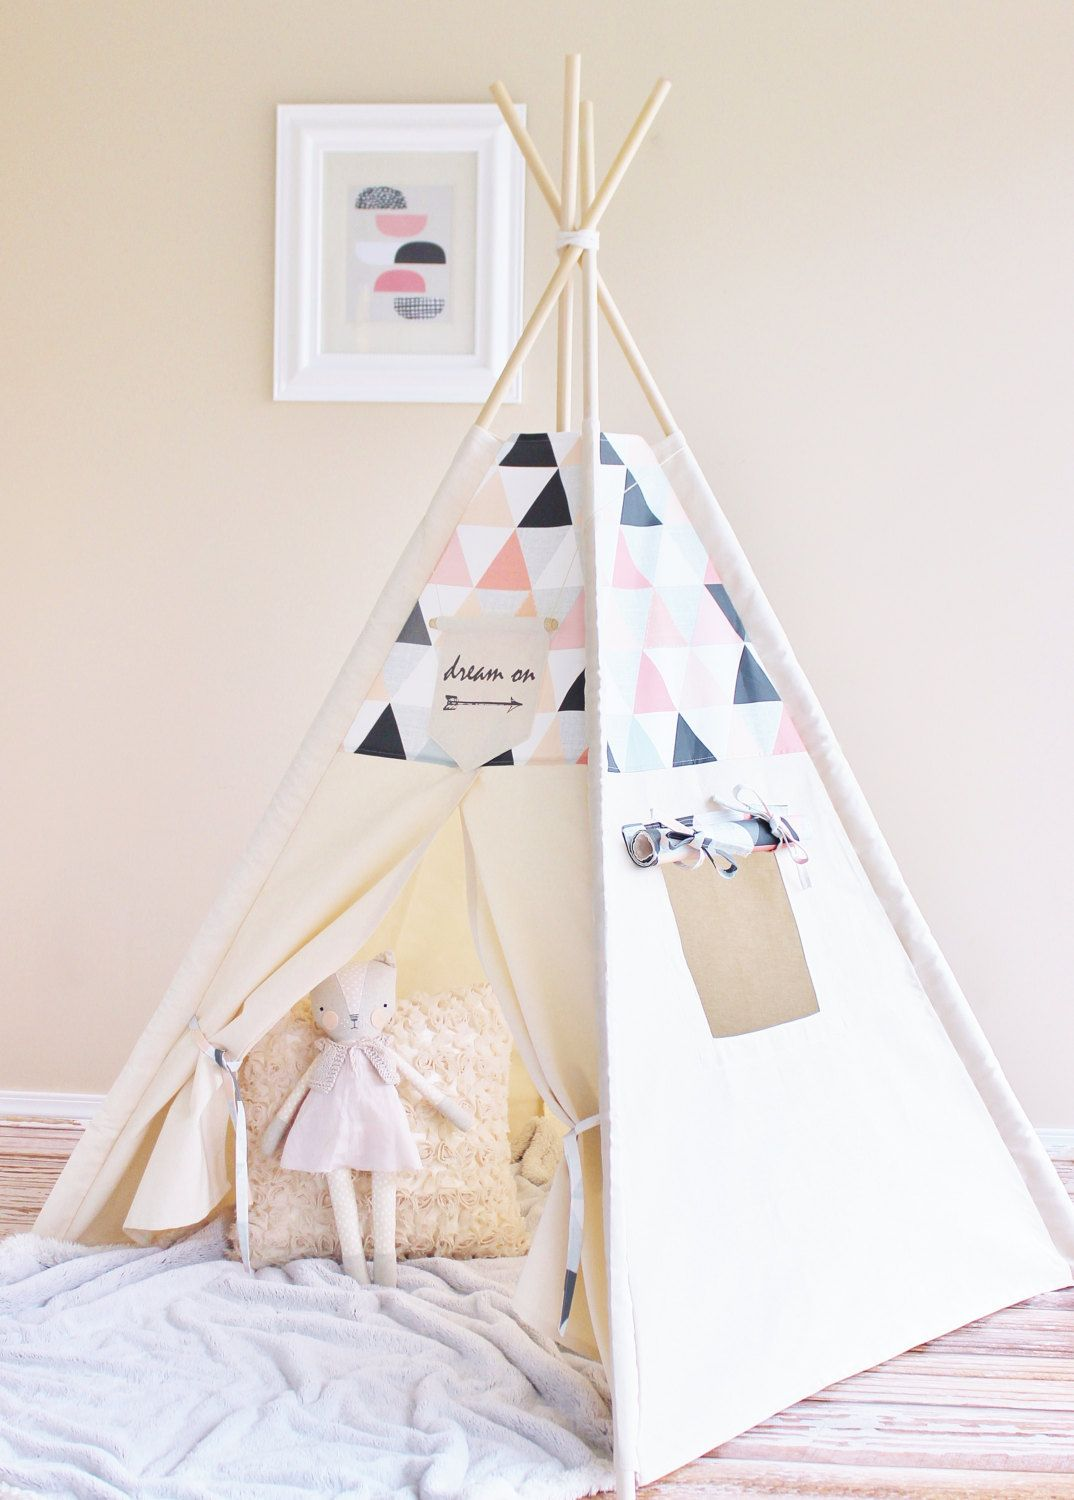 rosa pfirsich grauen creme schattiert dreiecke leinwand tipi zelt tipi play house. Black Bedroom Furniture Sets. Home Design Ideas